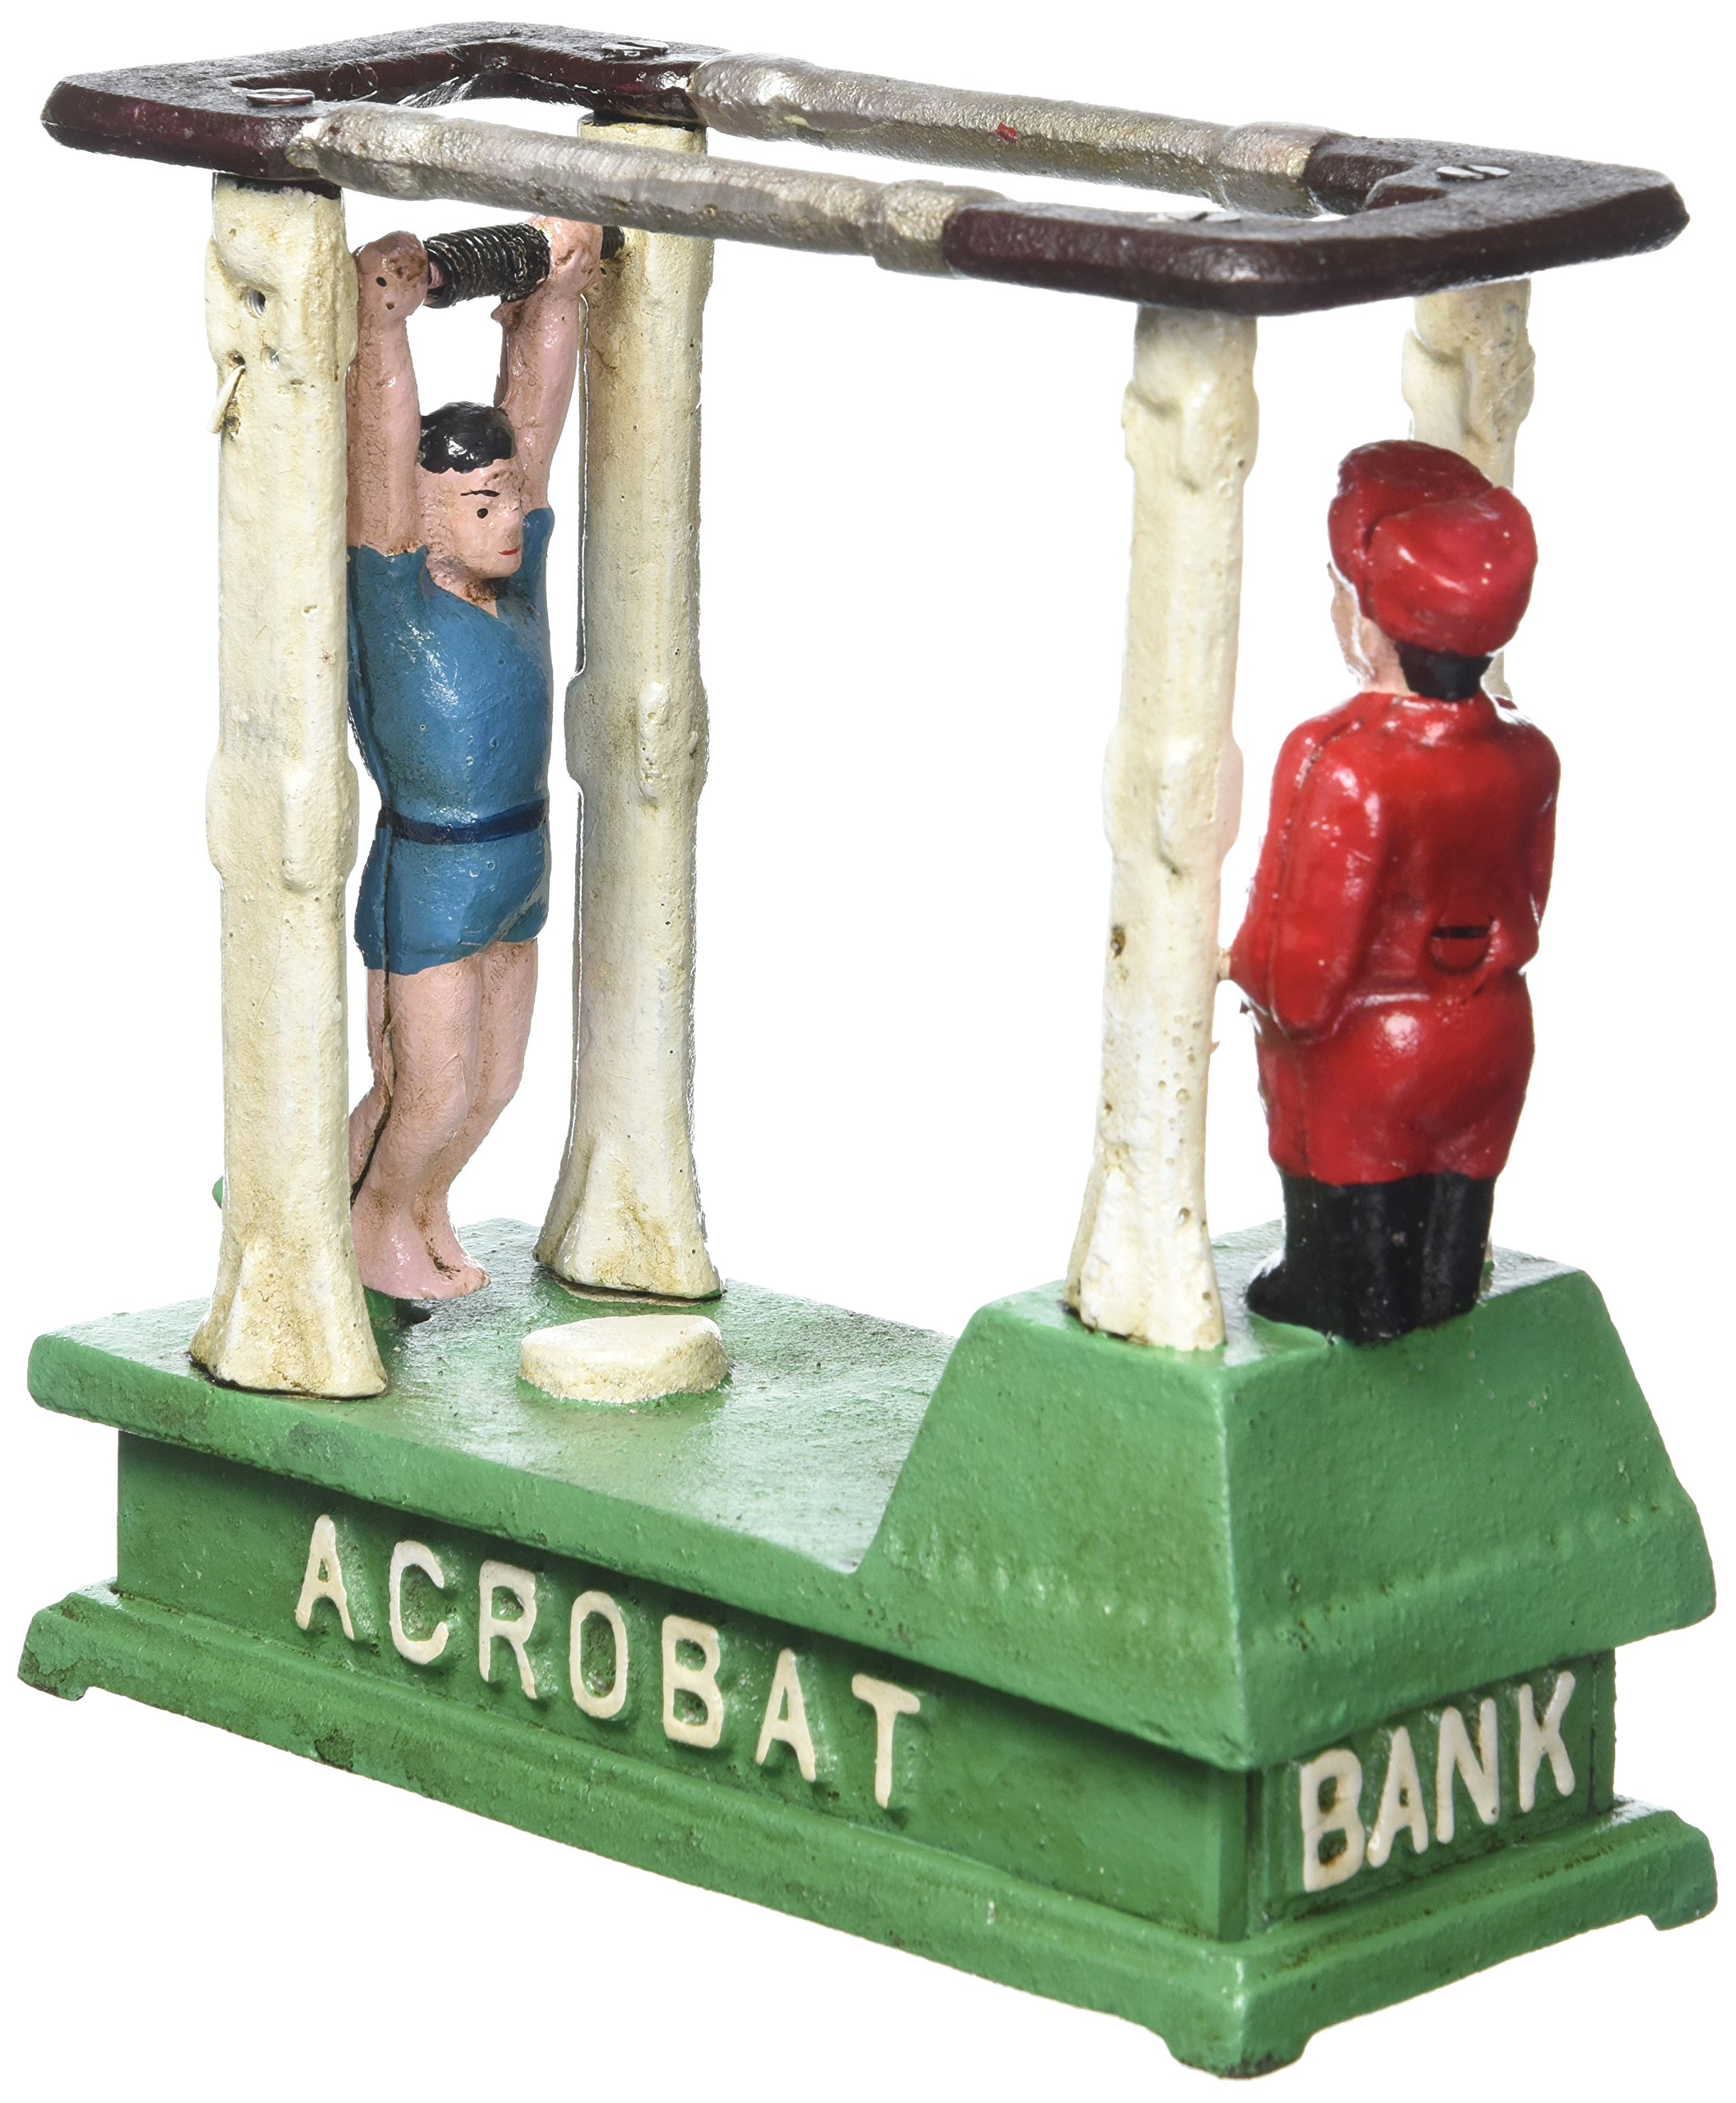 Design Toscano The Acrobat Collectors' Die-Cast Iron Mechanical Coin Bank by Design Toscano (Image #1)